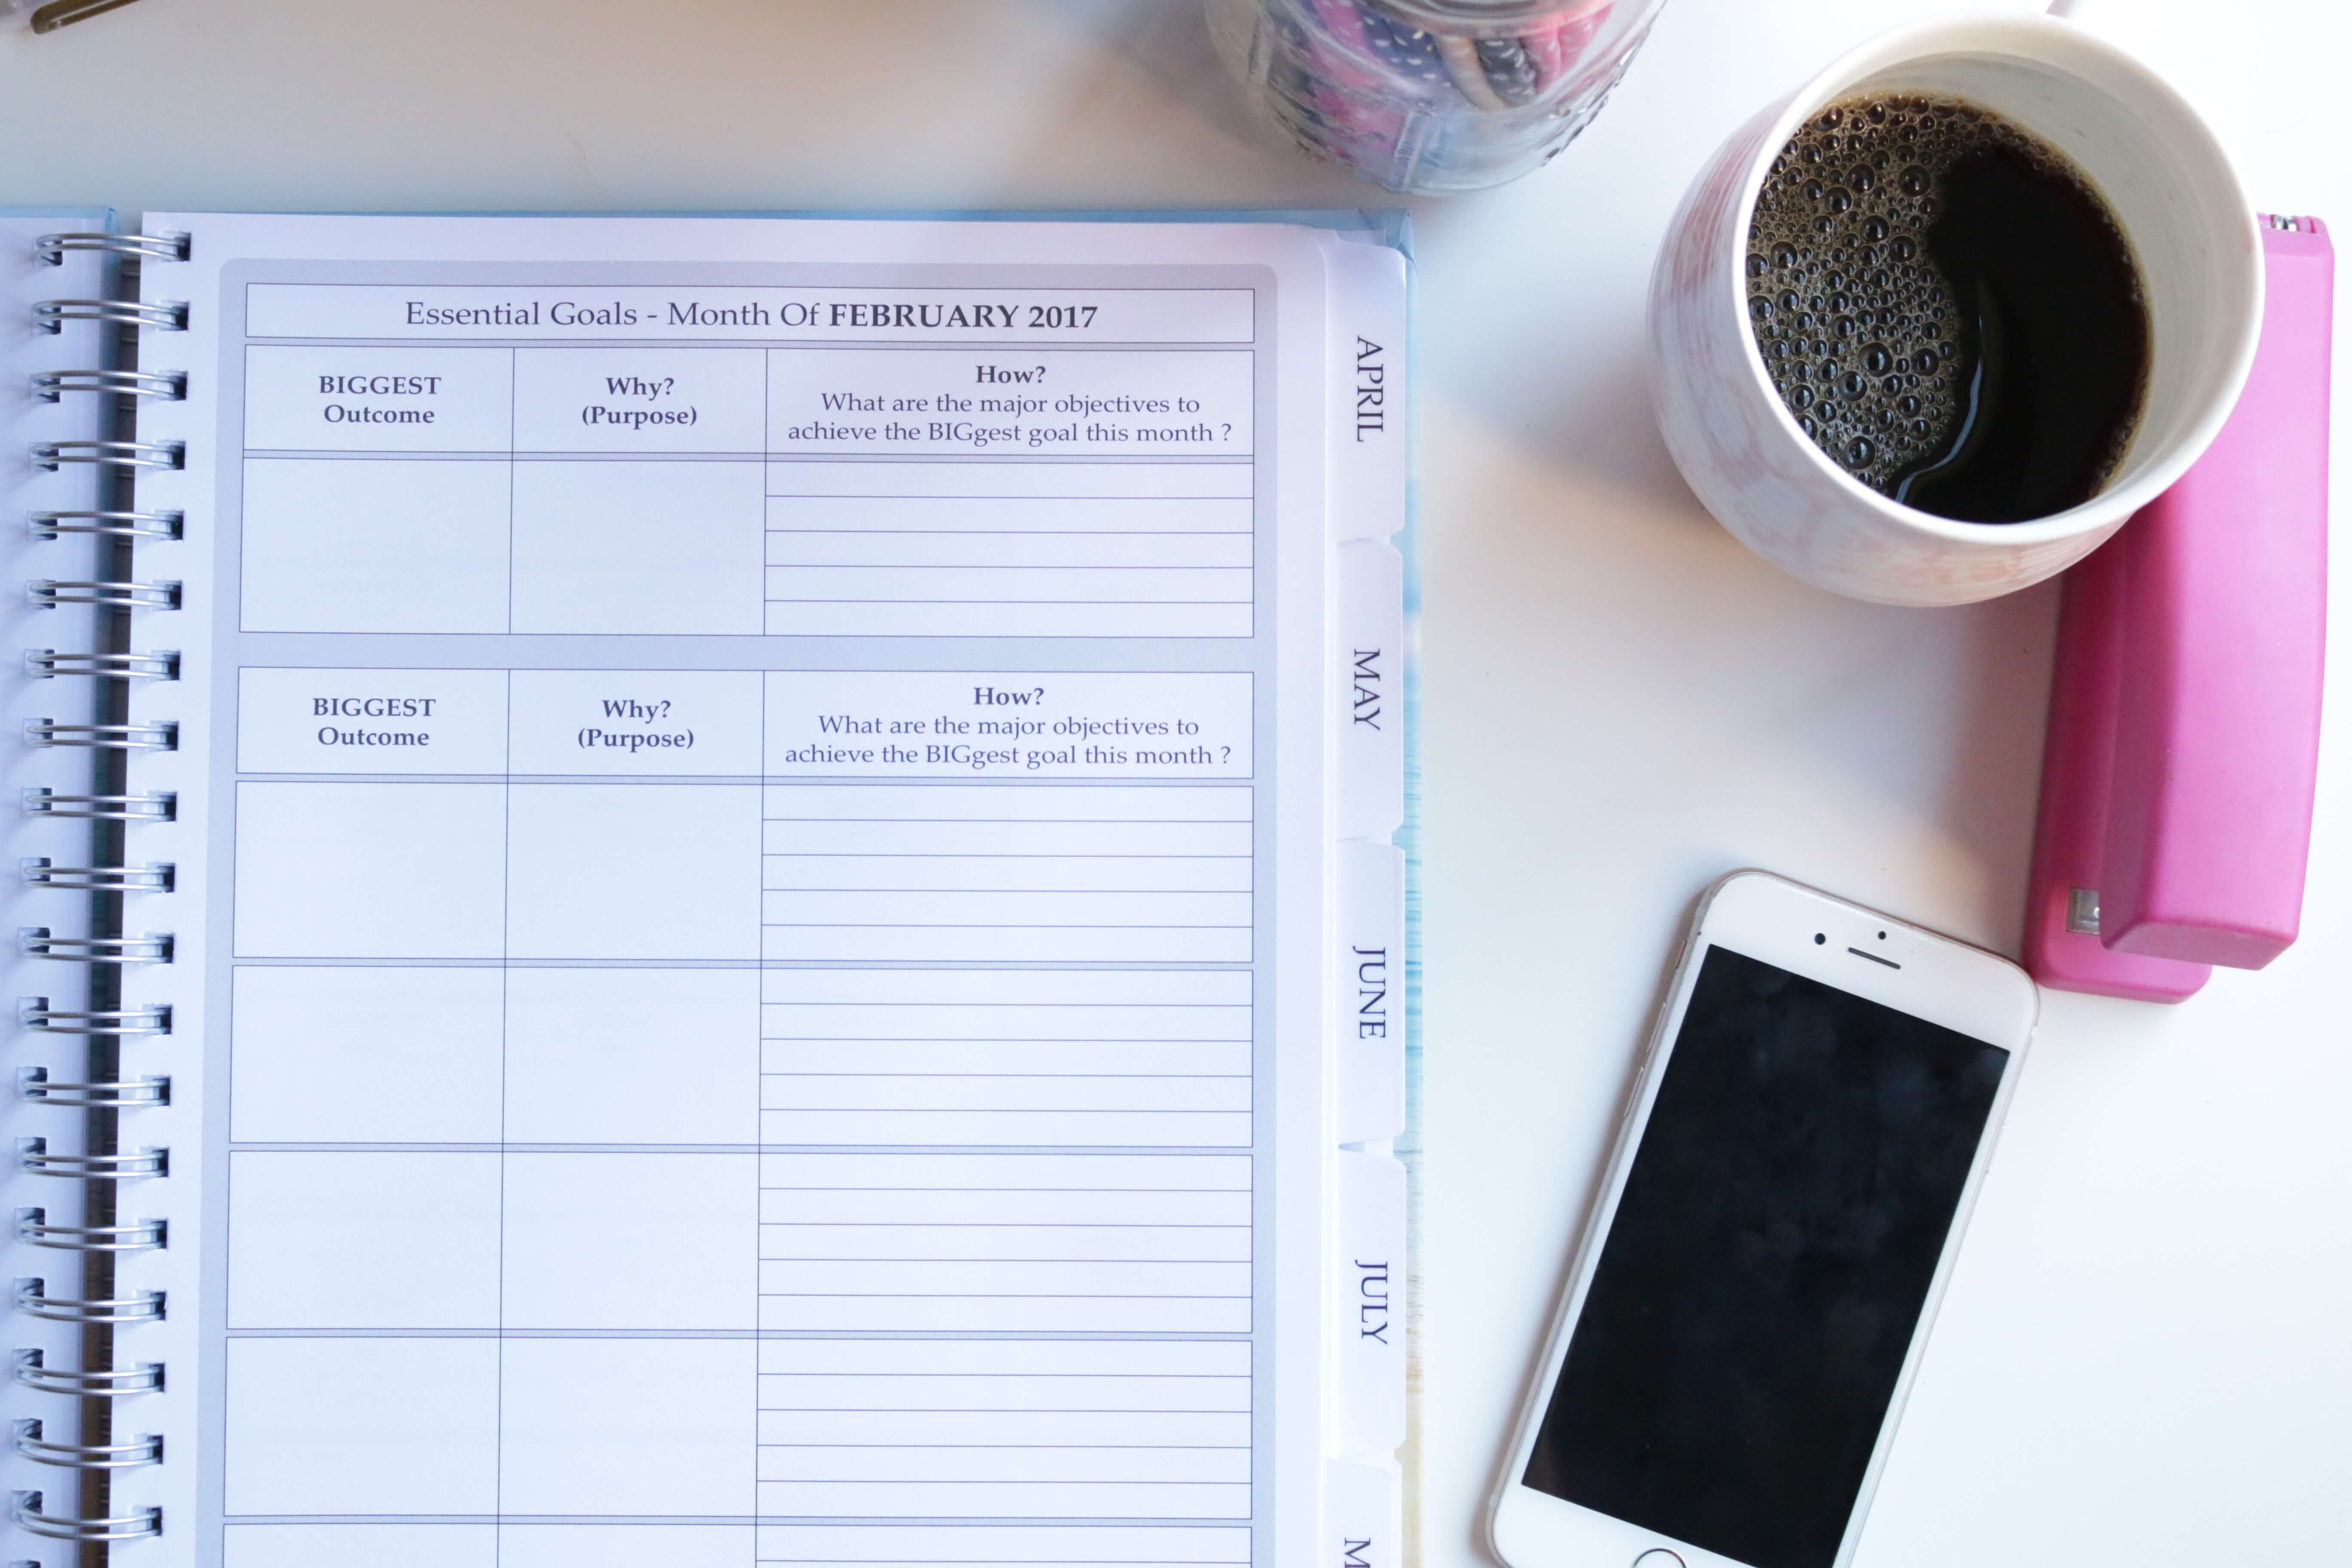 How to Pre-Plan Your Week So You Don't Stress